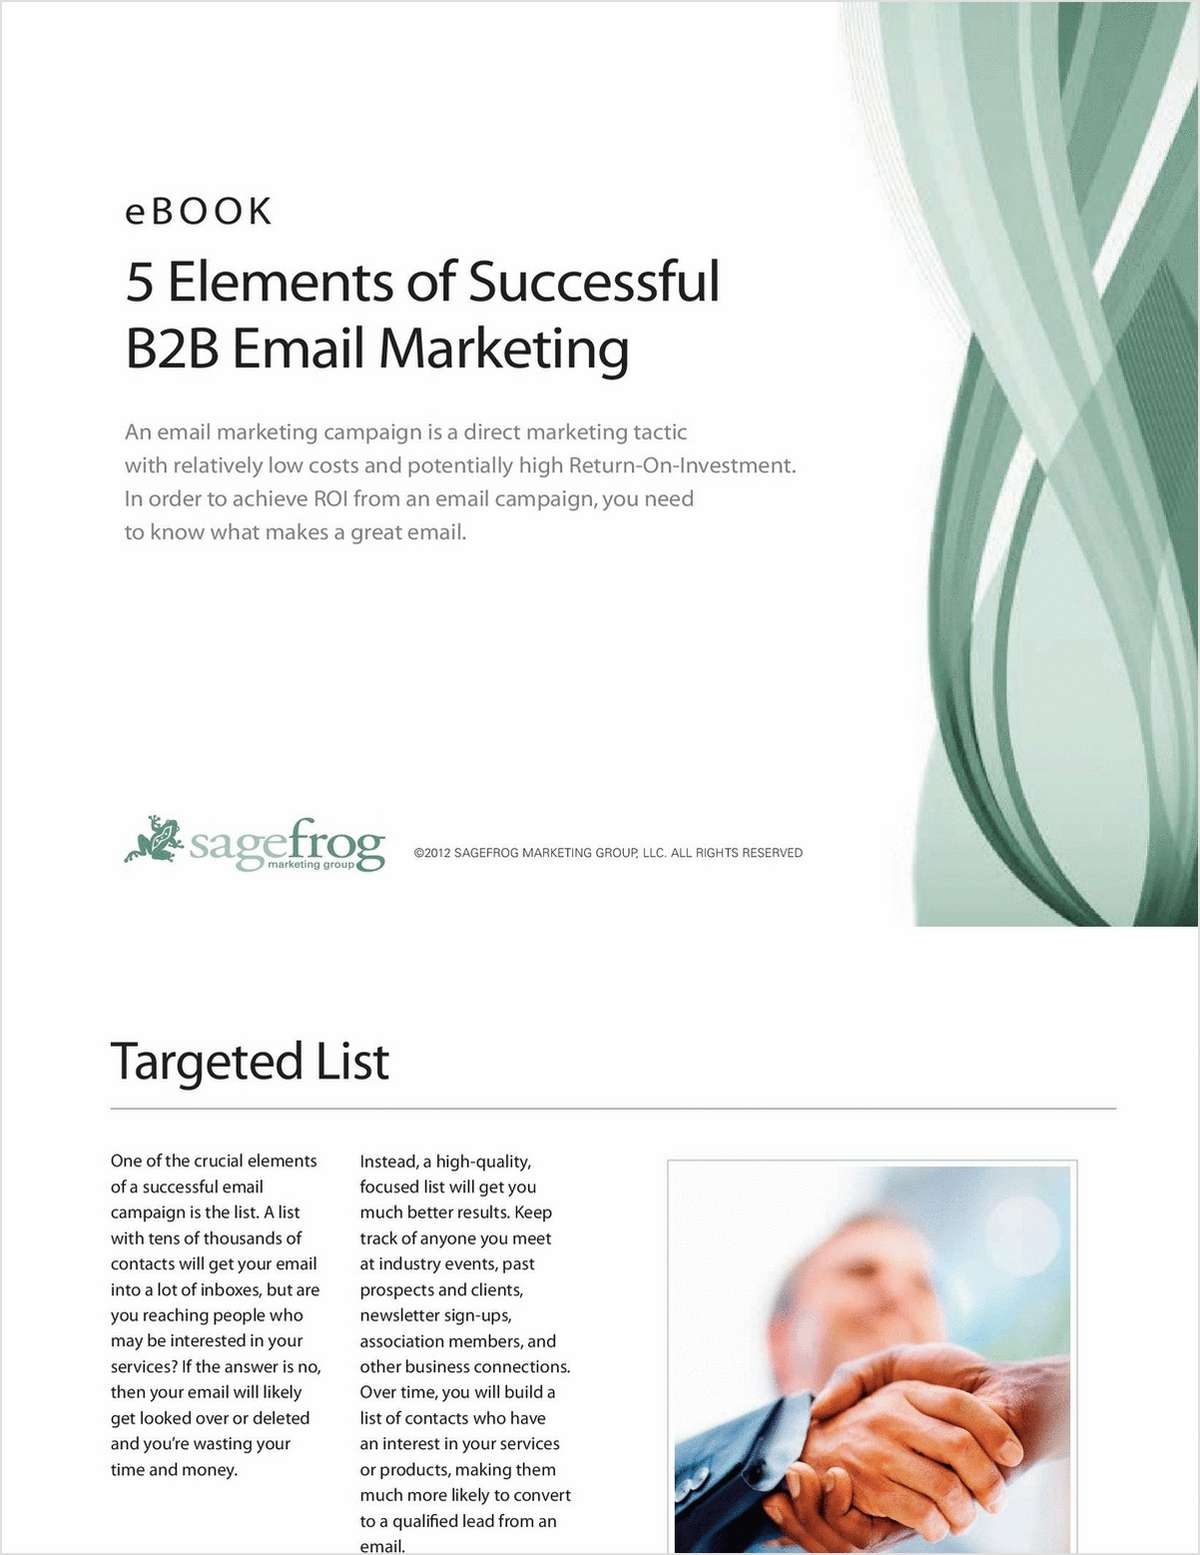 5 Elements of Successful B2B Email Marketing